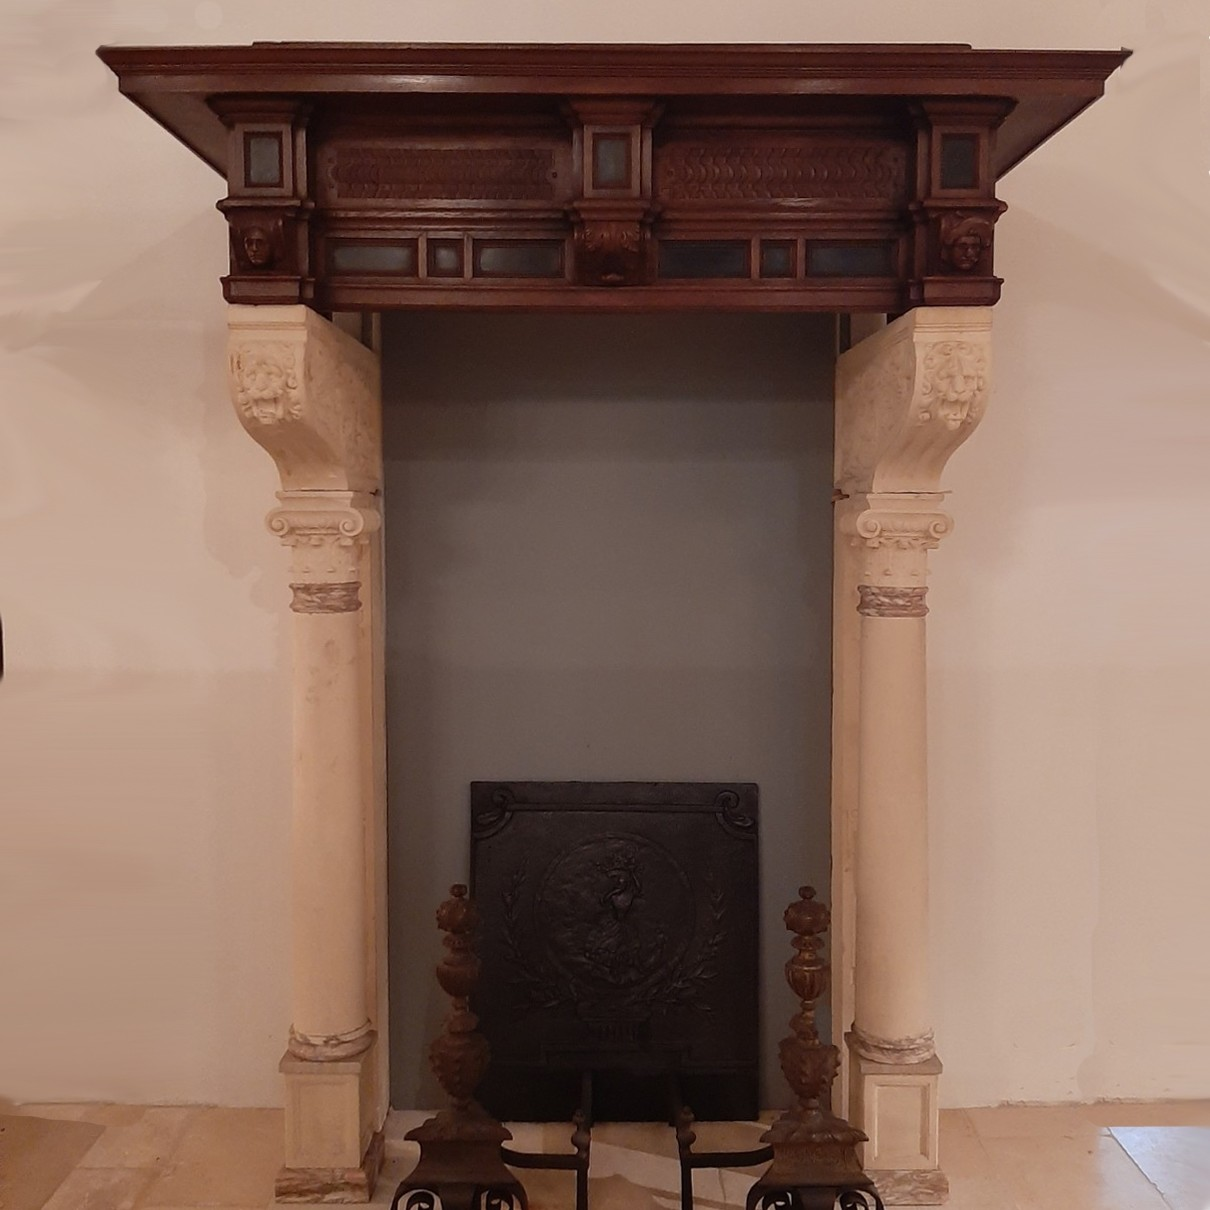 Antique high castle fireplace with sandstone columns